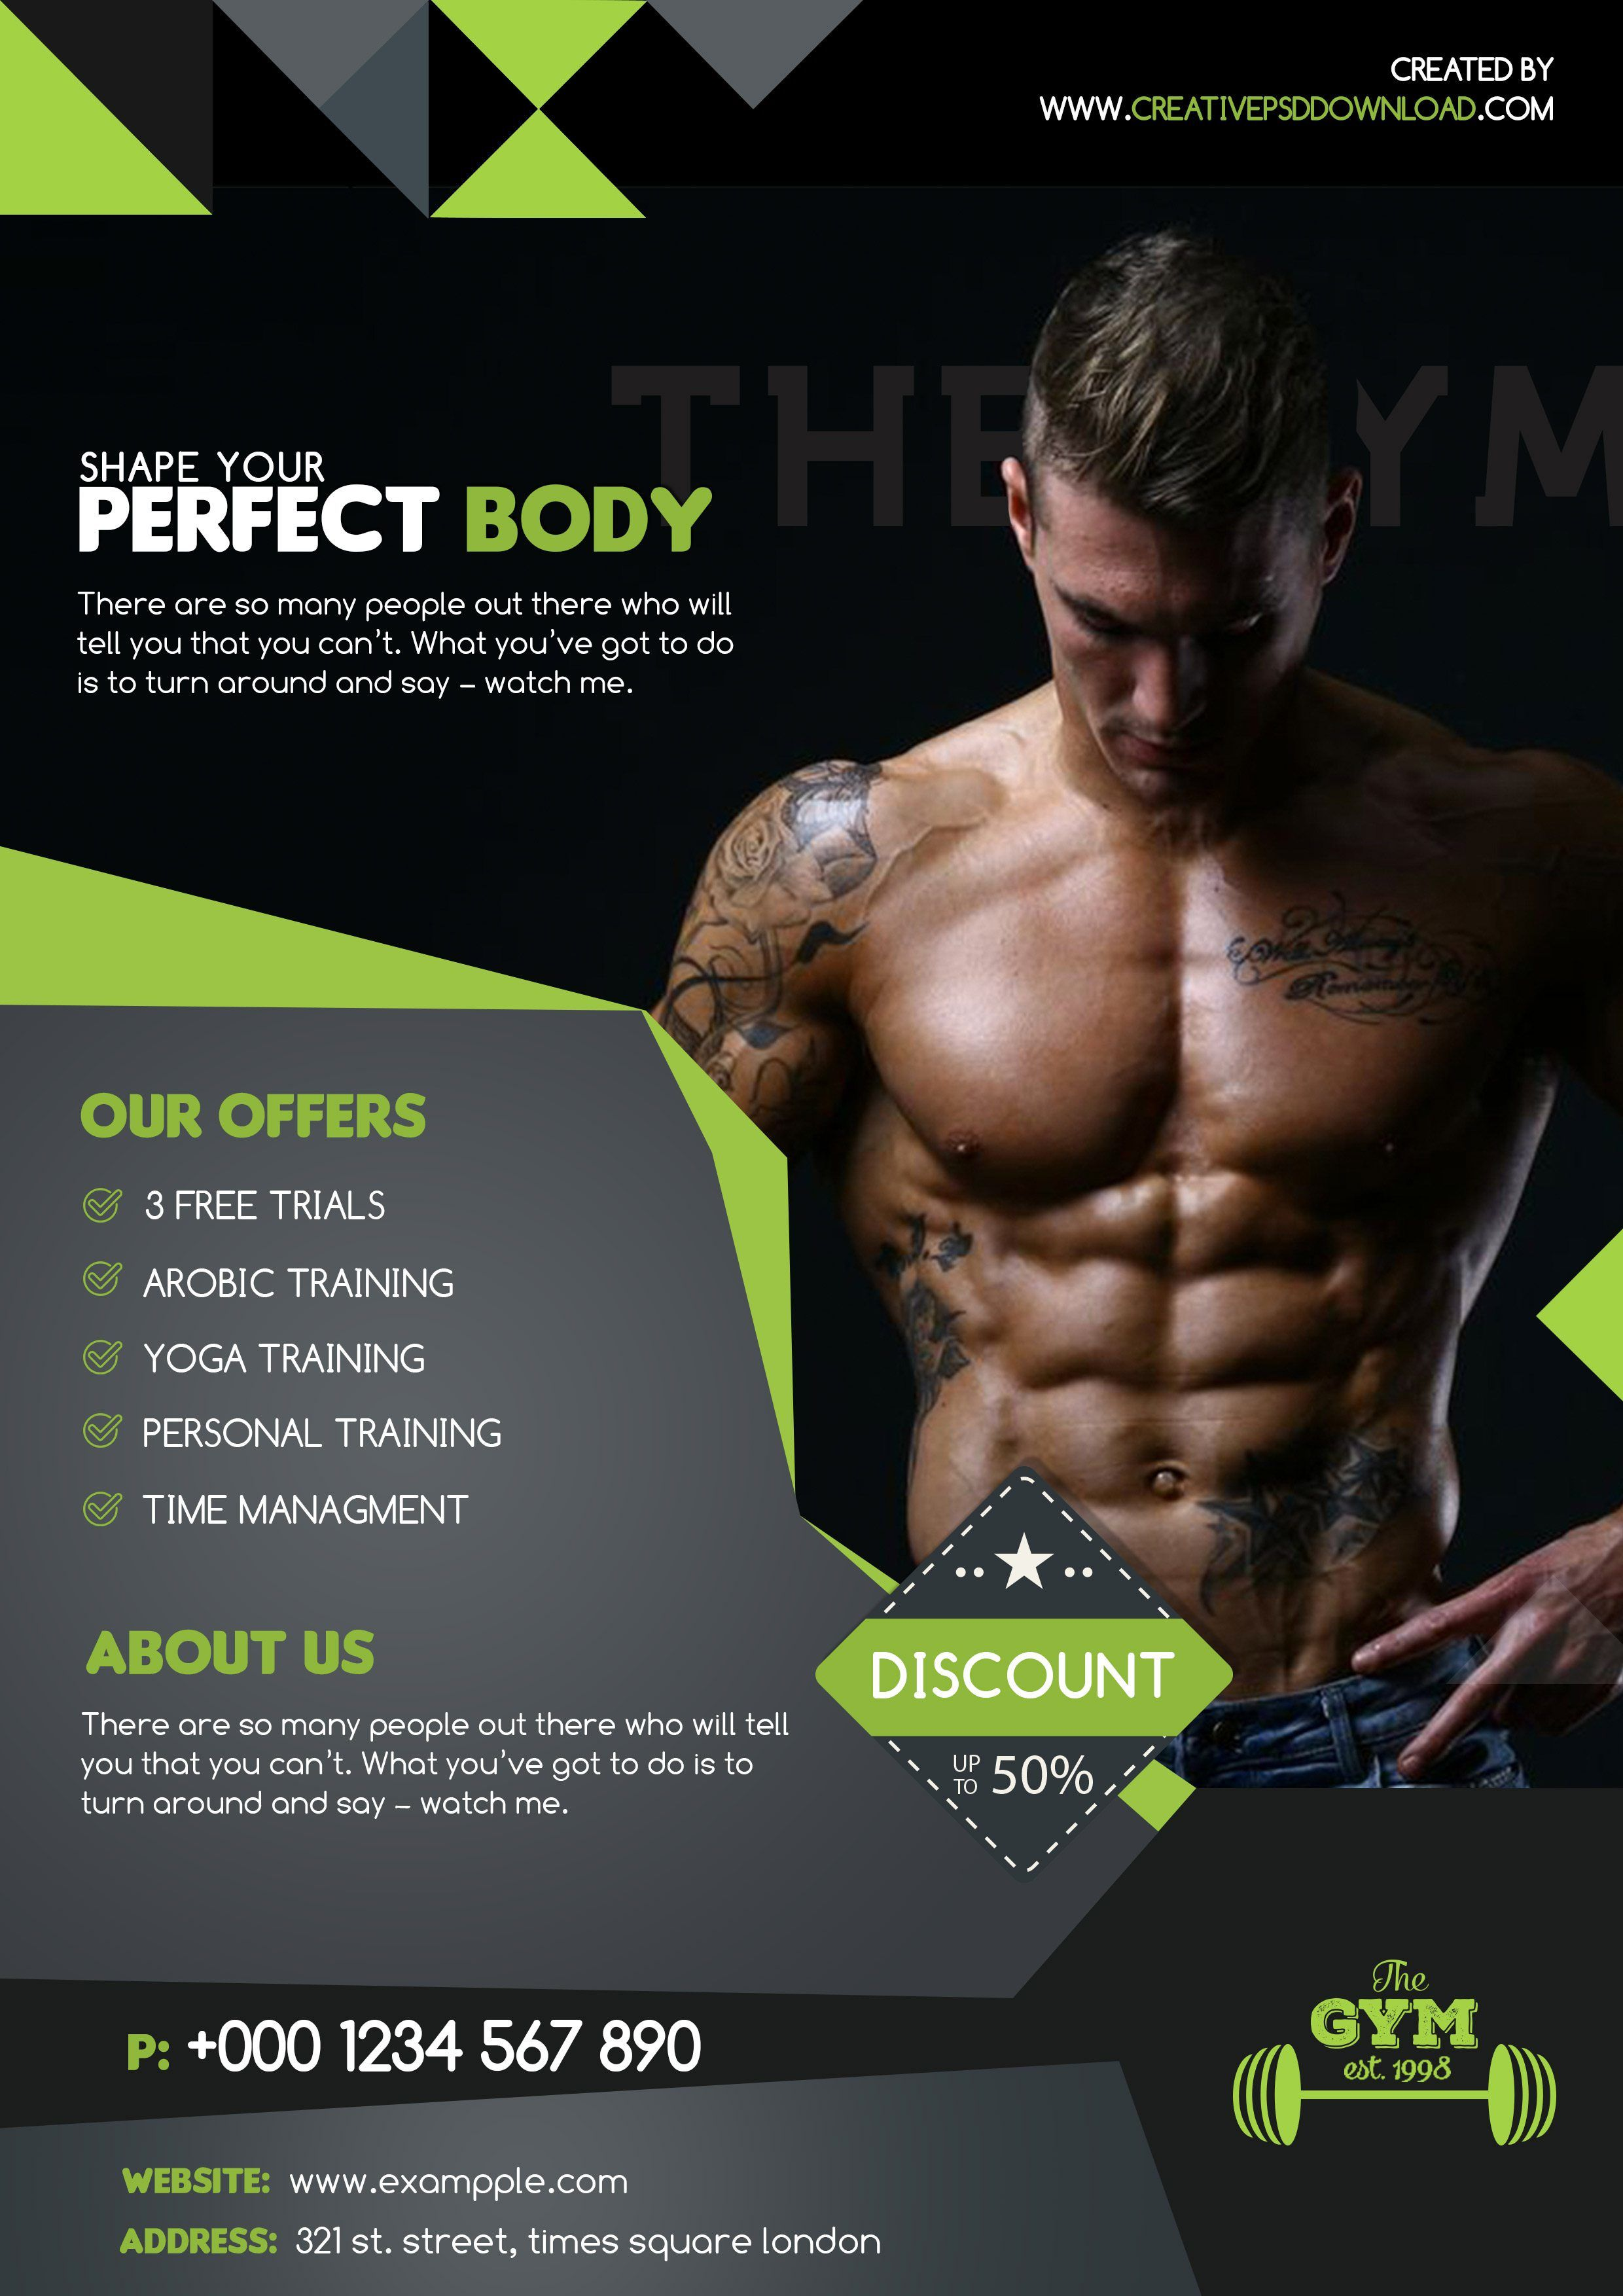 009 Outstanding Personal Trainer Flyer Template Inspiration  Word PsdFull